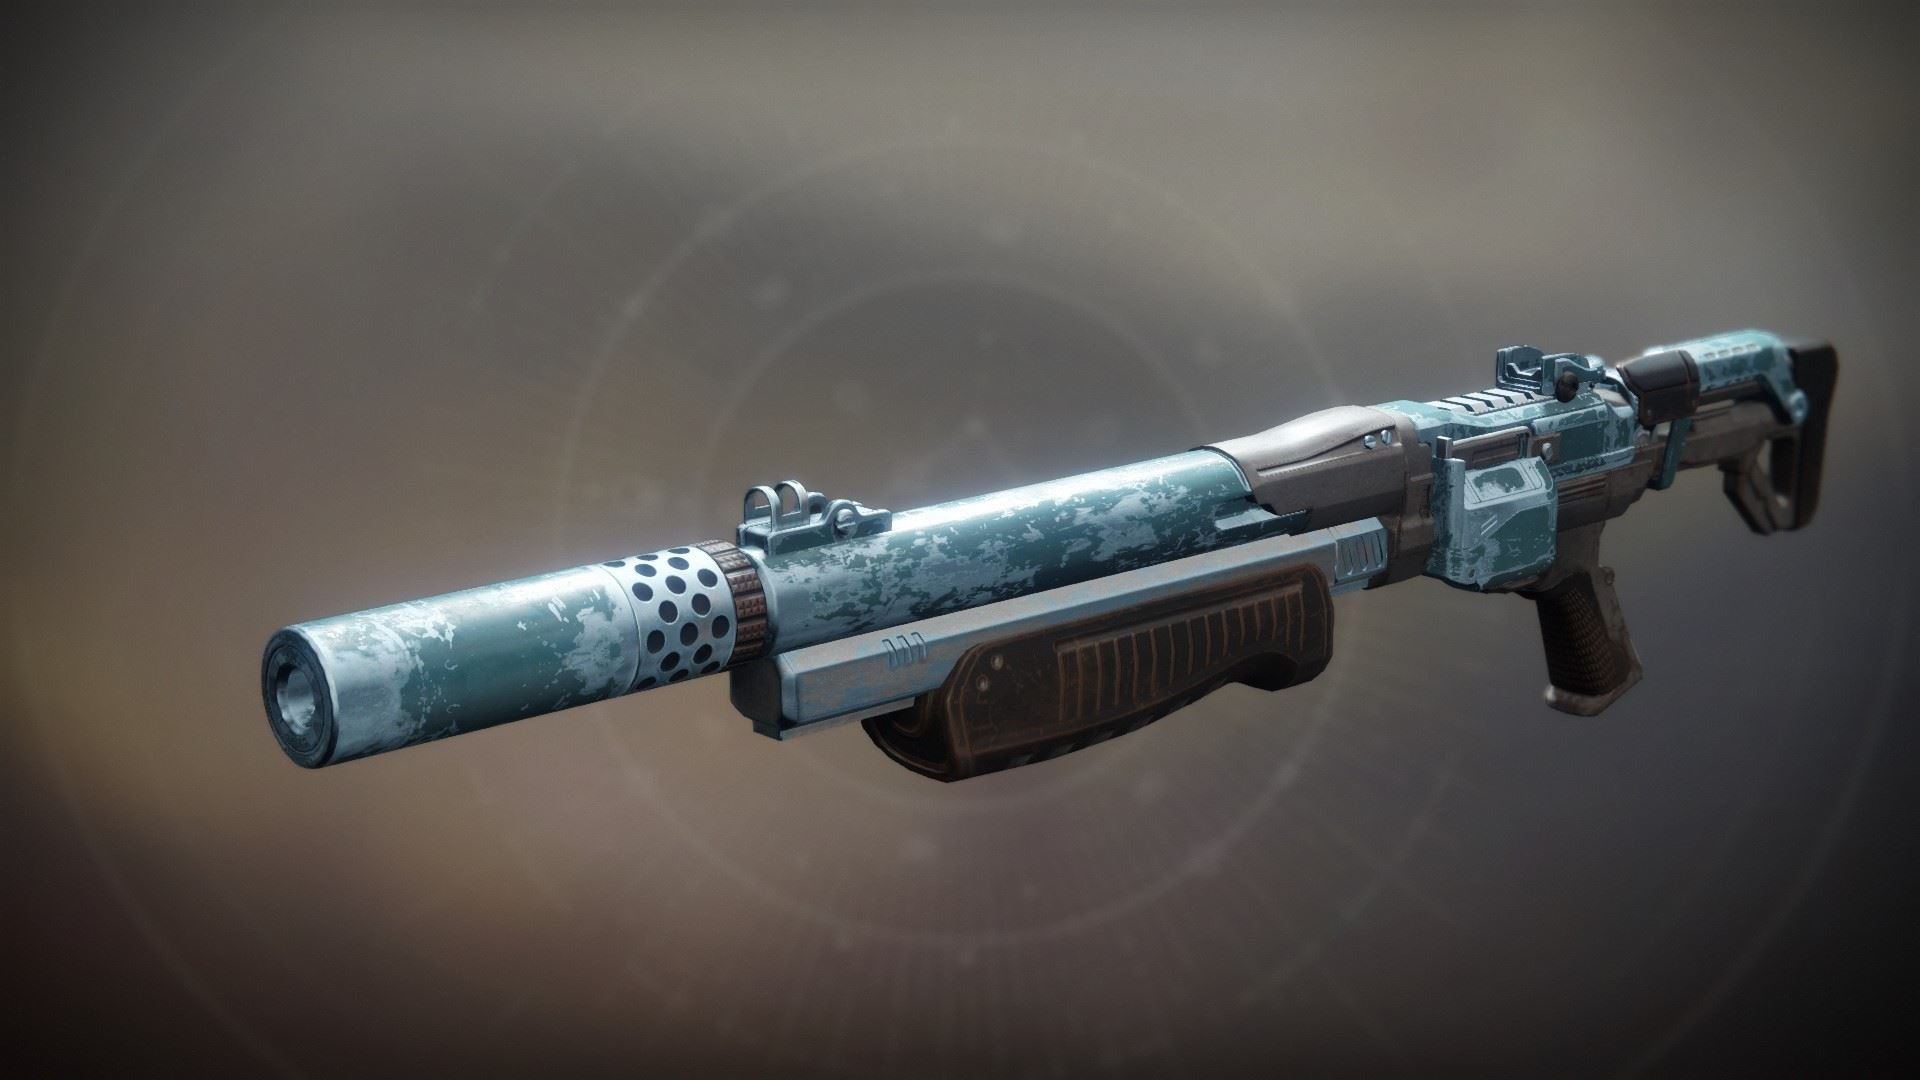 An in-game render of the Botheration Mk.28.